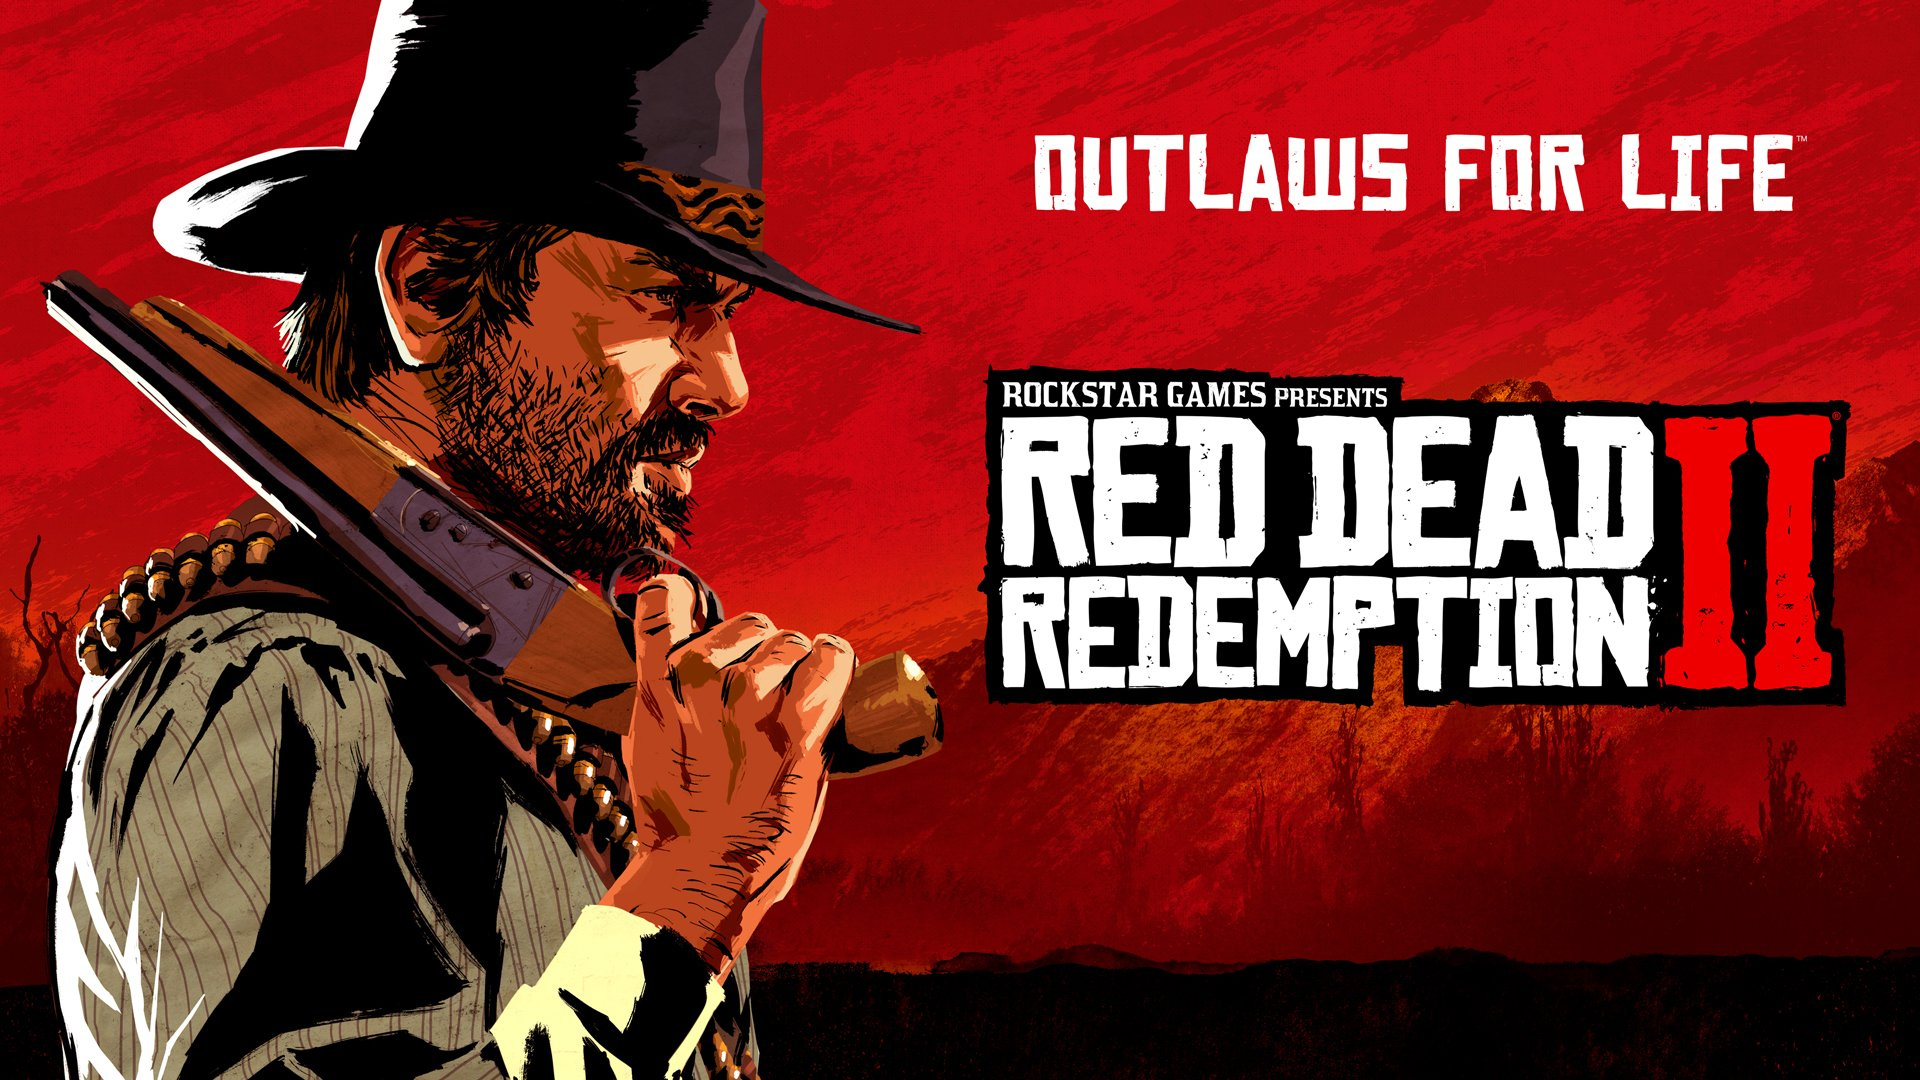 Red Dead Redemption 2 Official Launch Trailer  Coming October 26 Pre-order and Pre-load: https://t.co/xLMyn8RntW https://t.co/qvqOj7c4CA